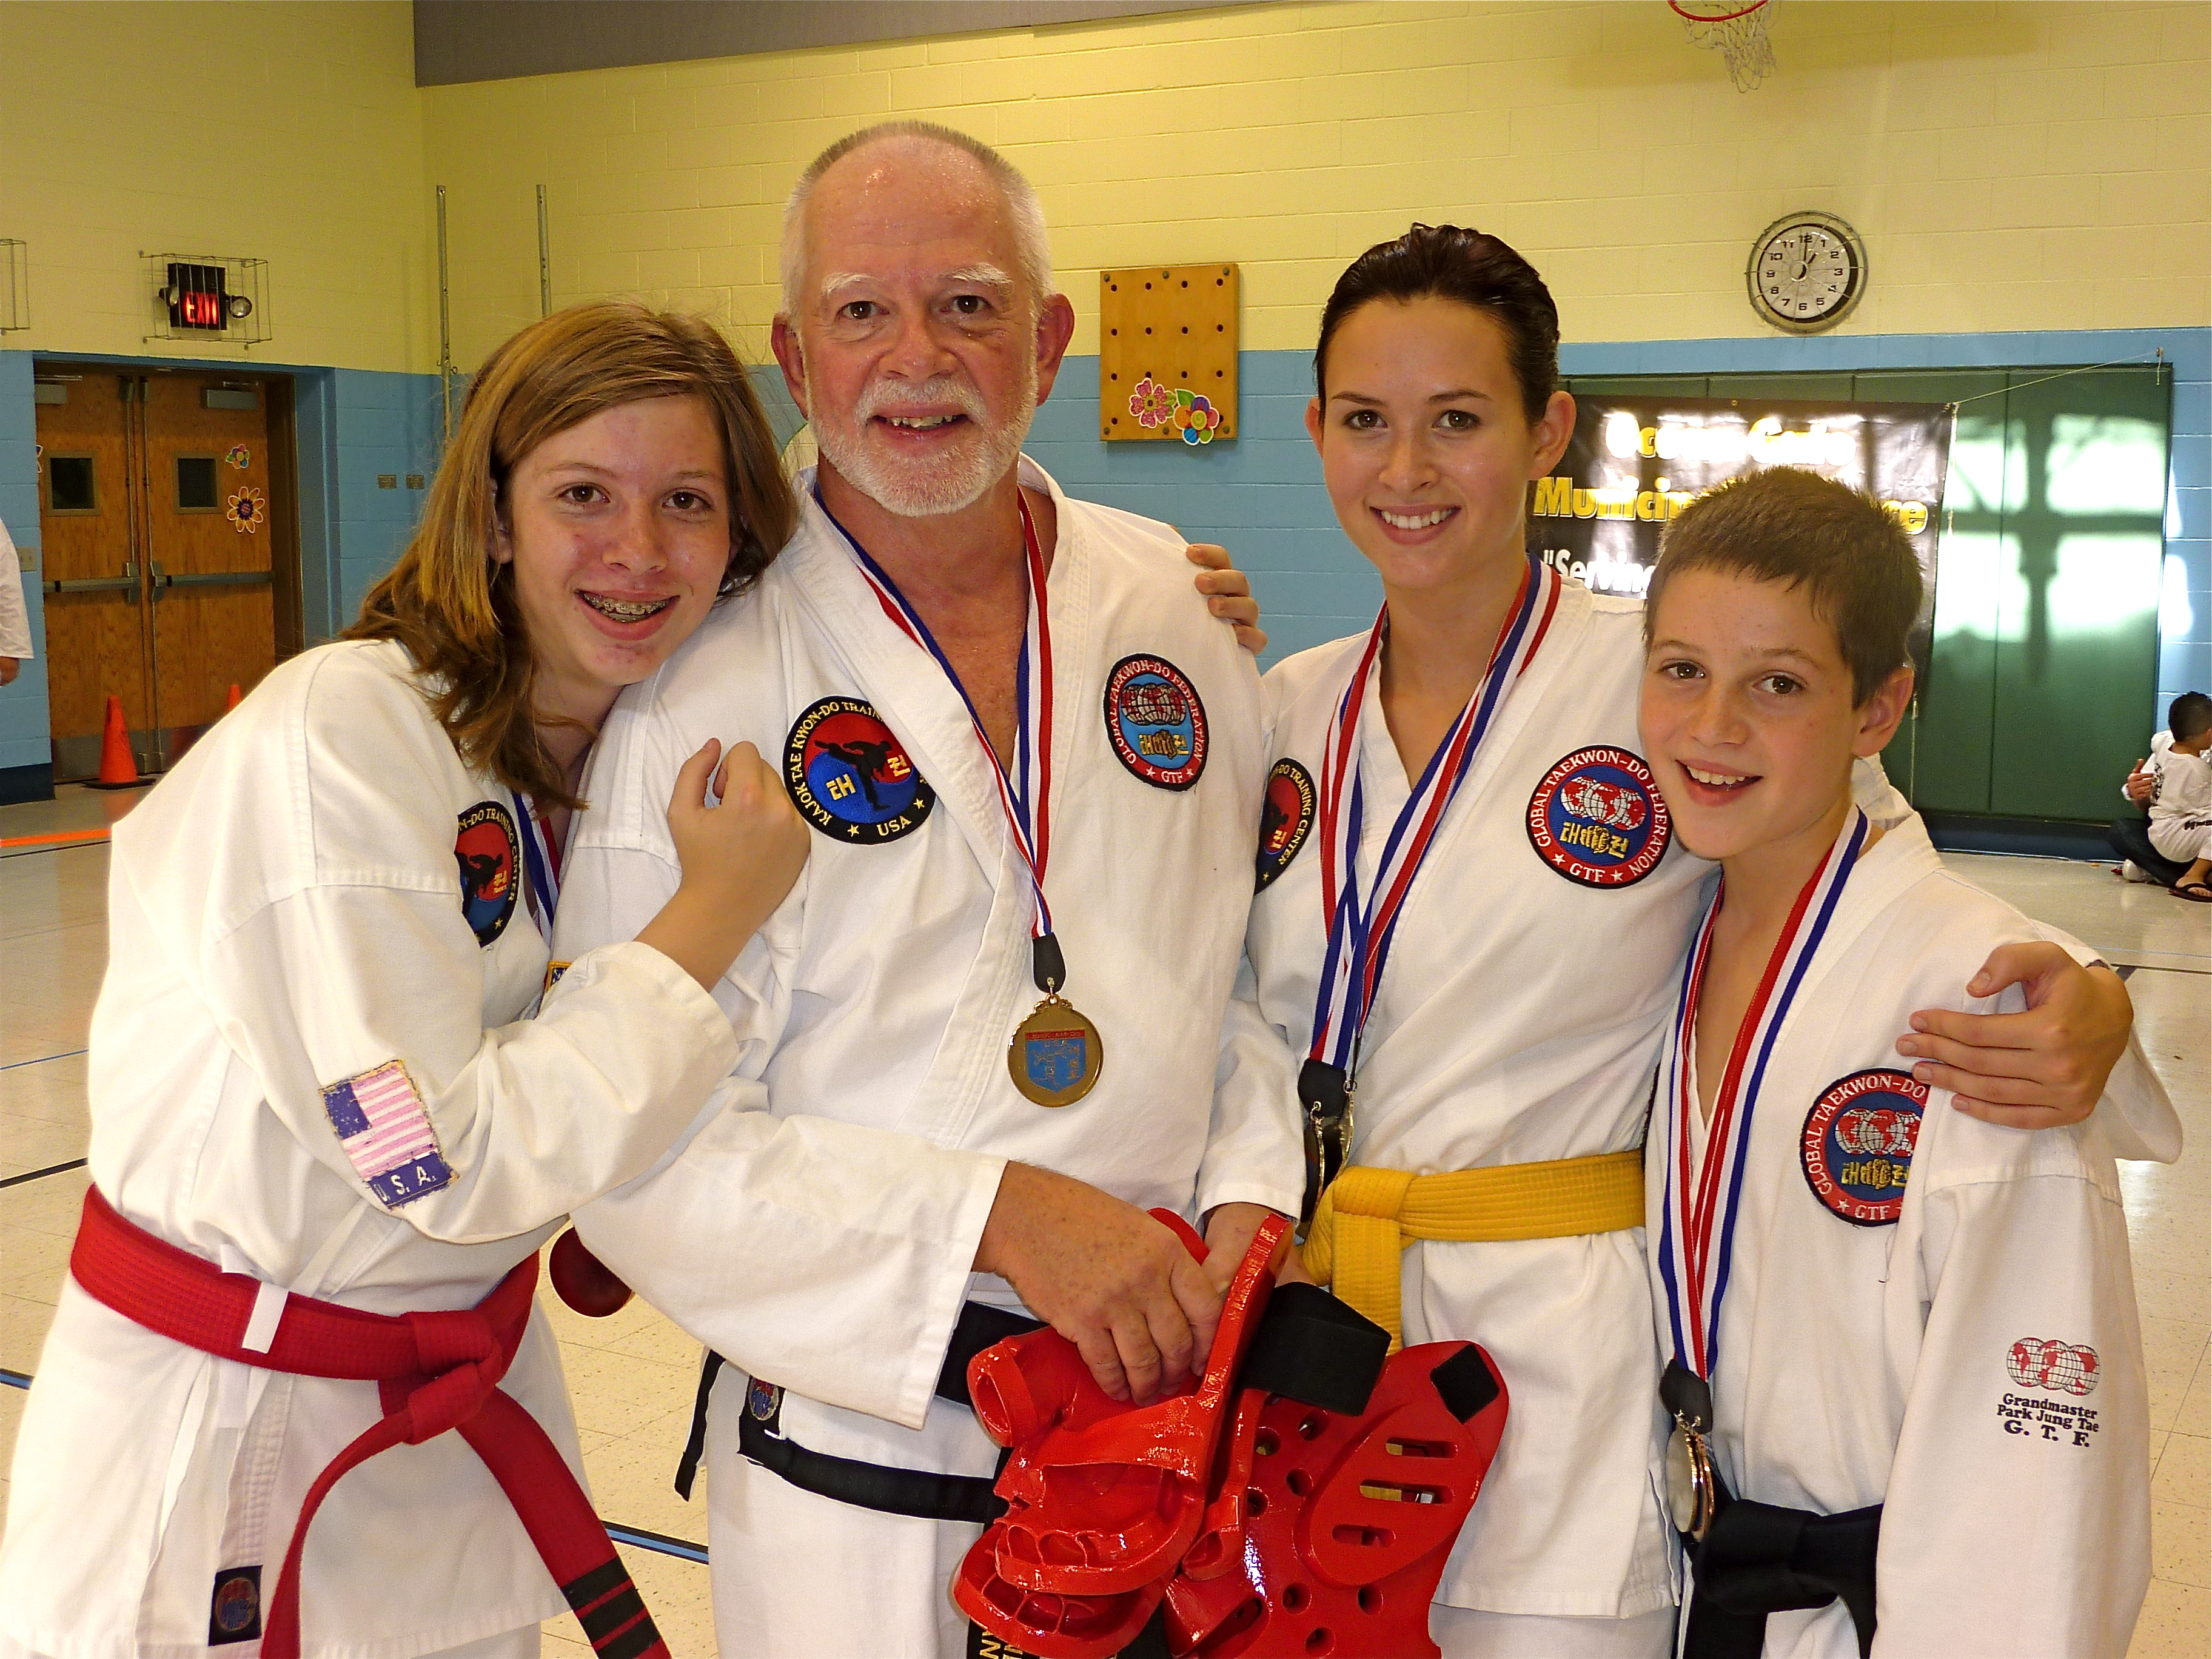 why i am taking taekwondo Hey everyone i am going to be volunteering as the medic for my son's taekwondo tournament looking for advice or anything i should be mindful of before the tournament.